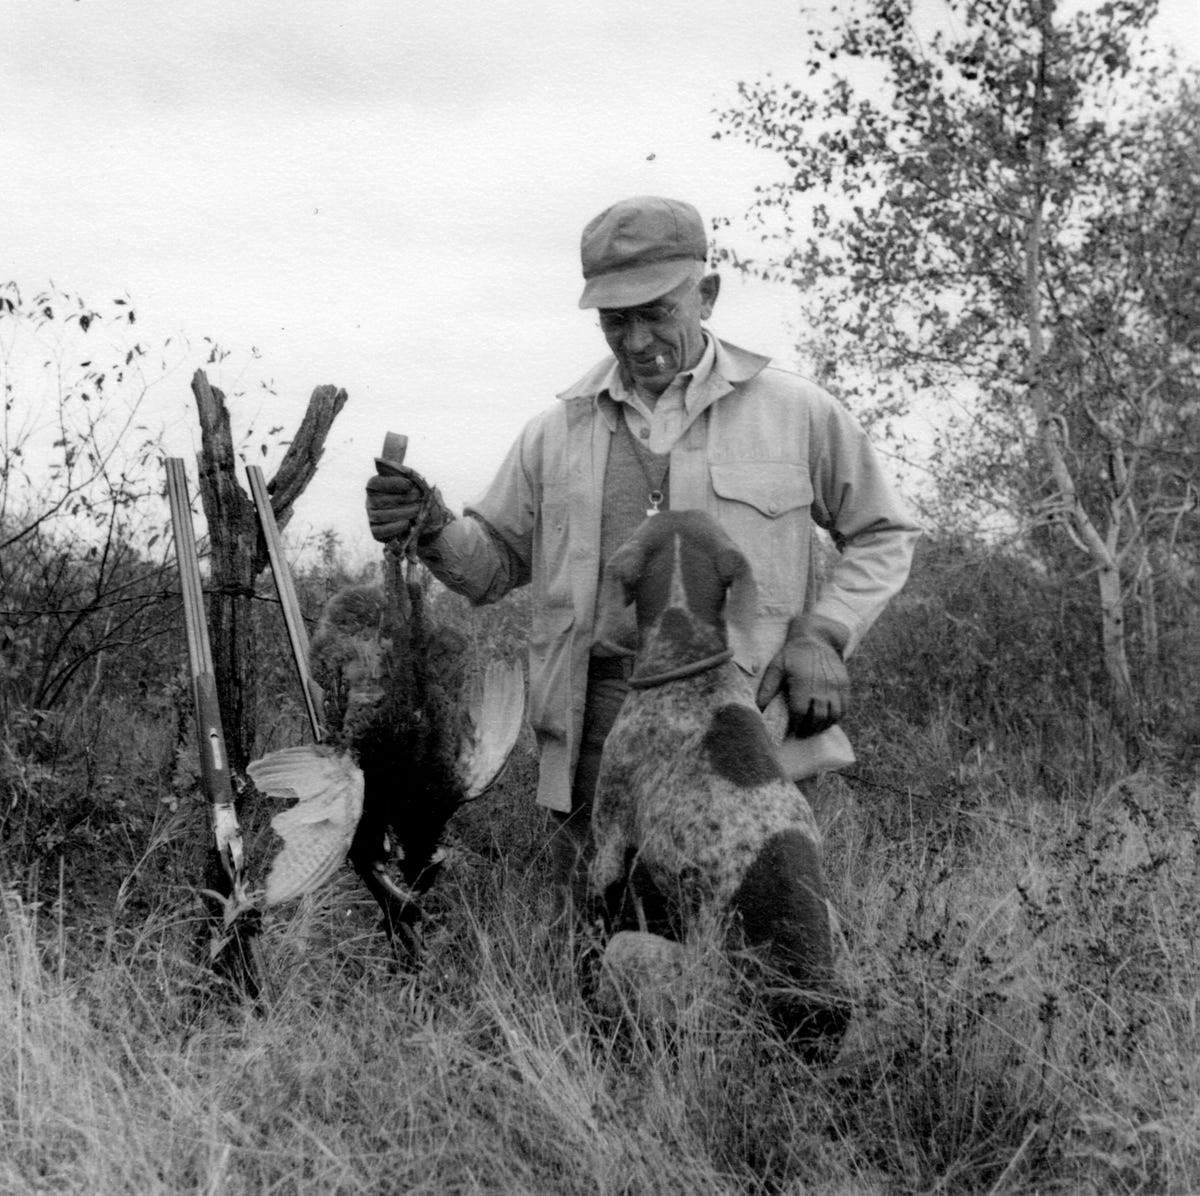 Smith: Novices learn to hunt in the aura of Aldo Leopold